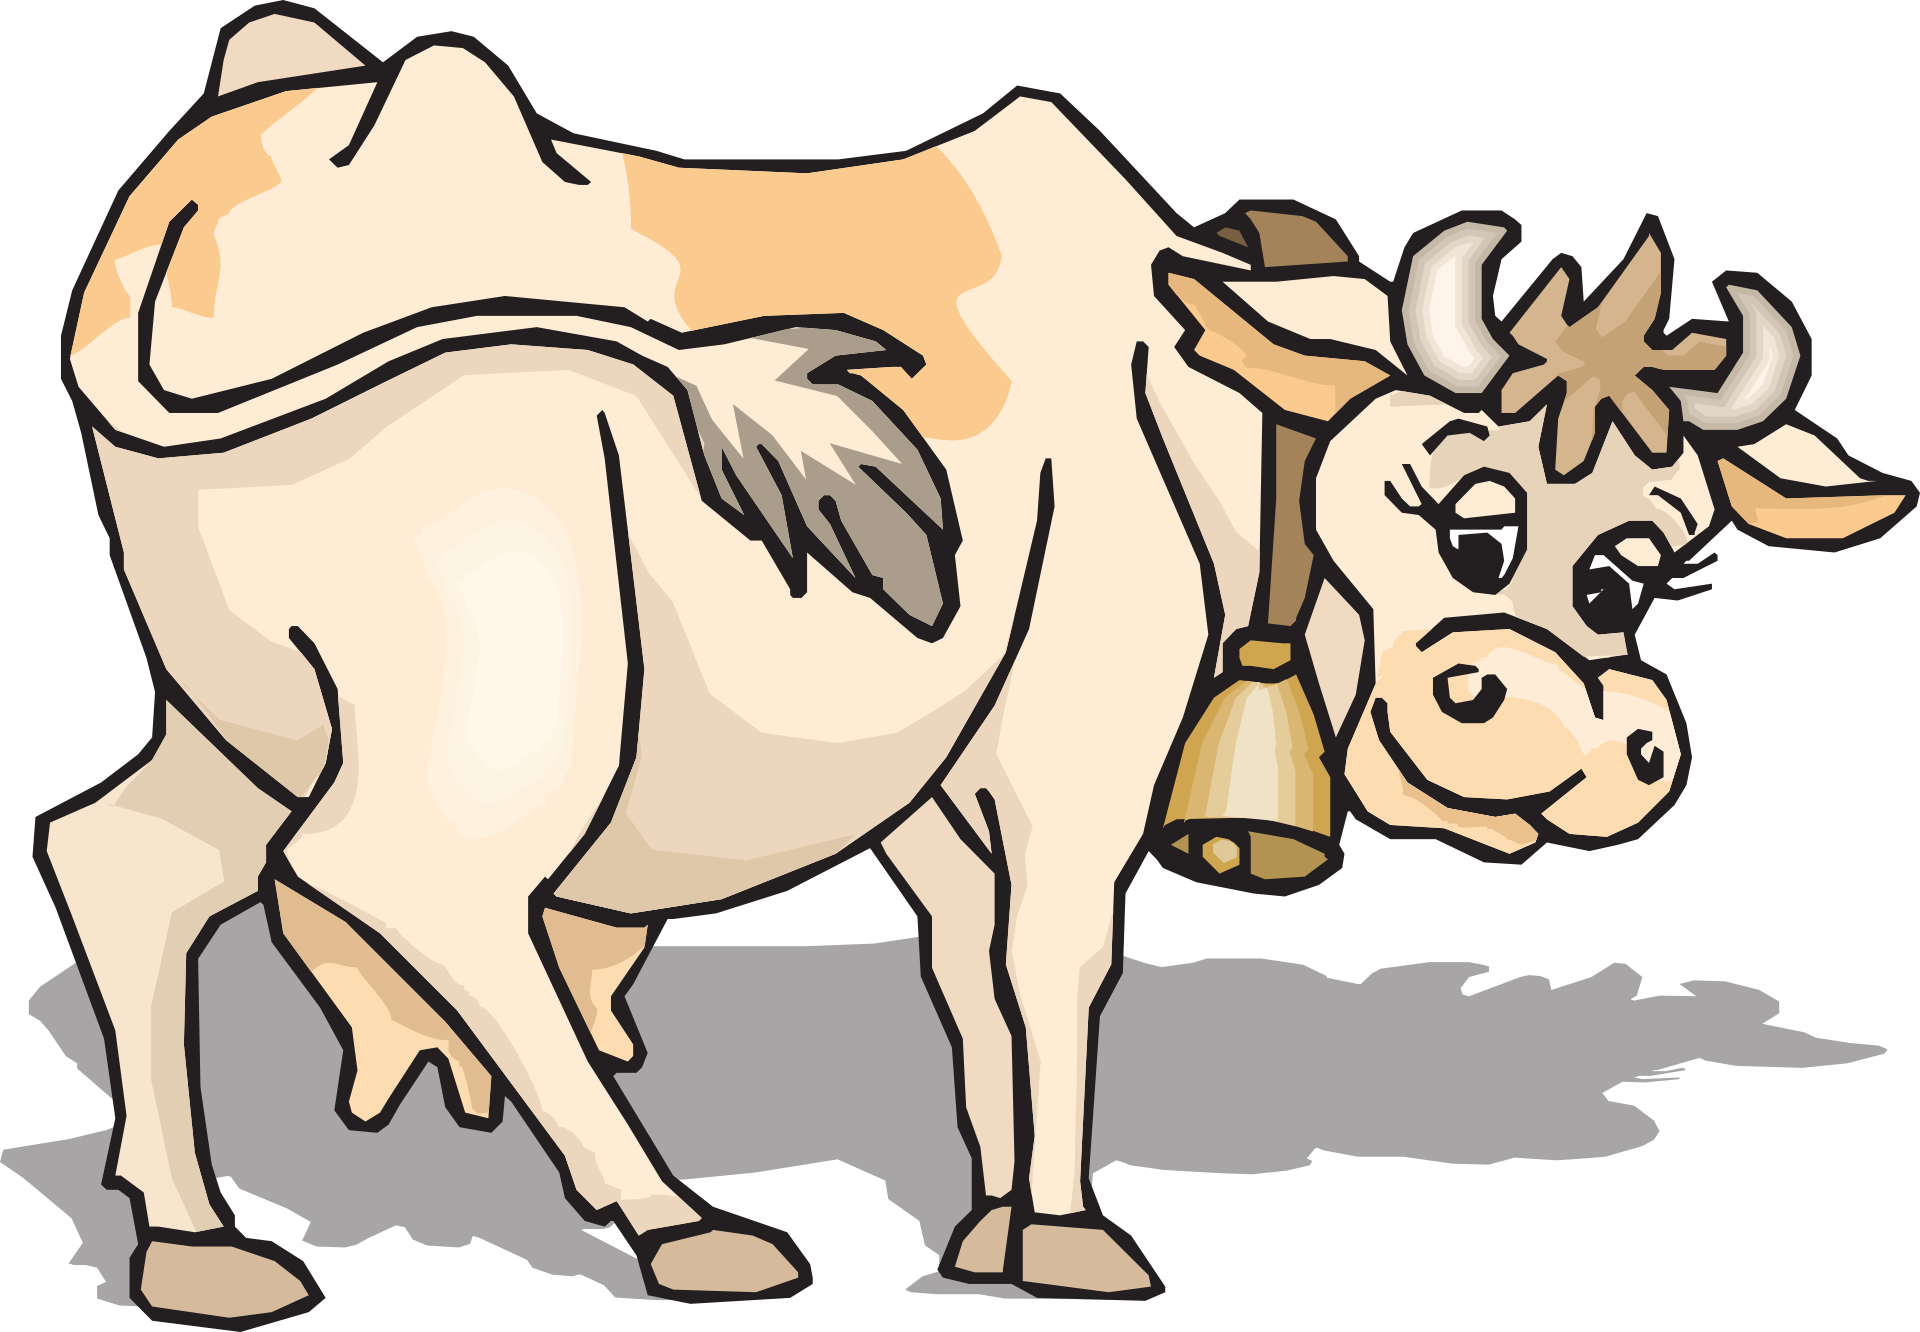 cow farm cartoon drawing free image https pixy org licence php